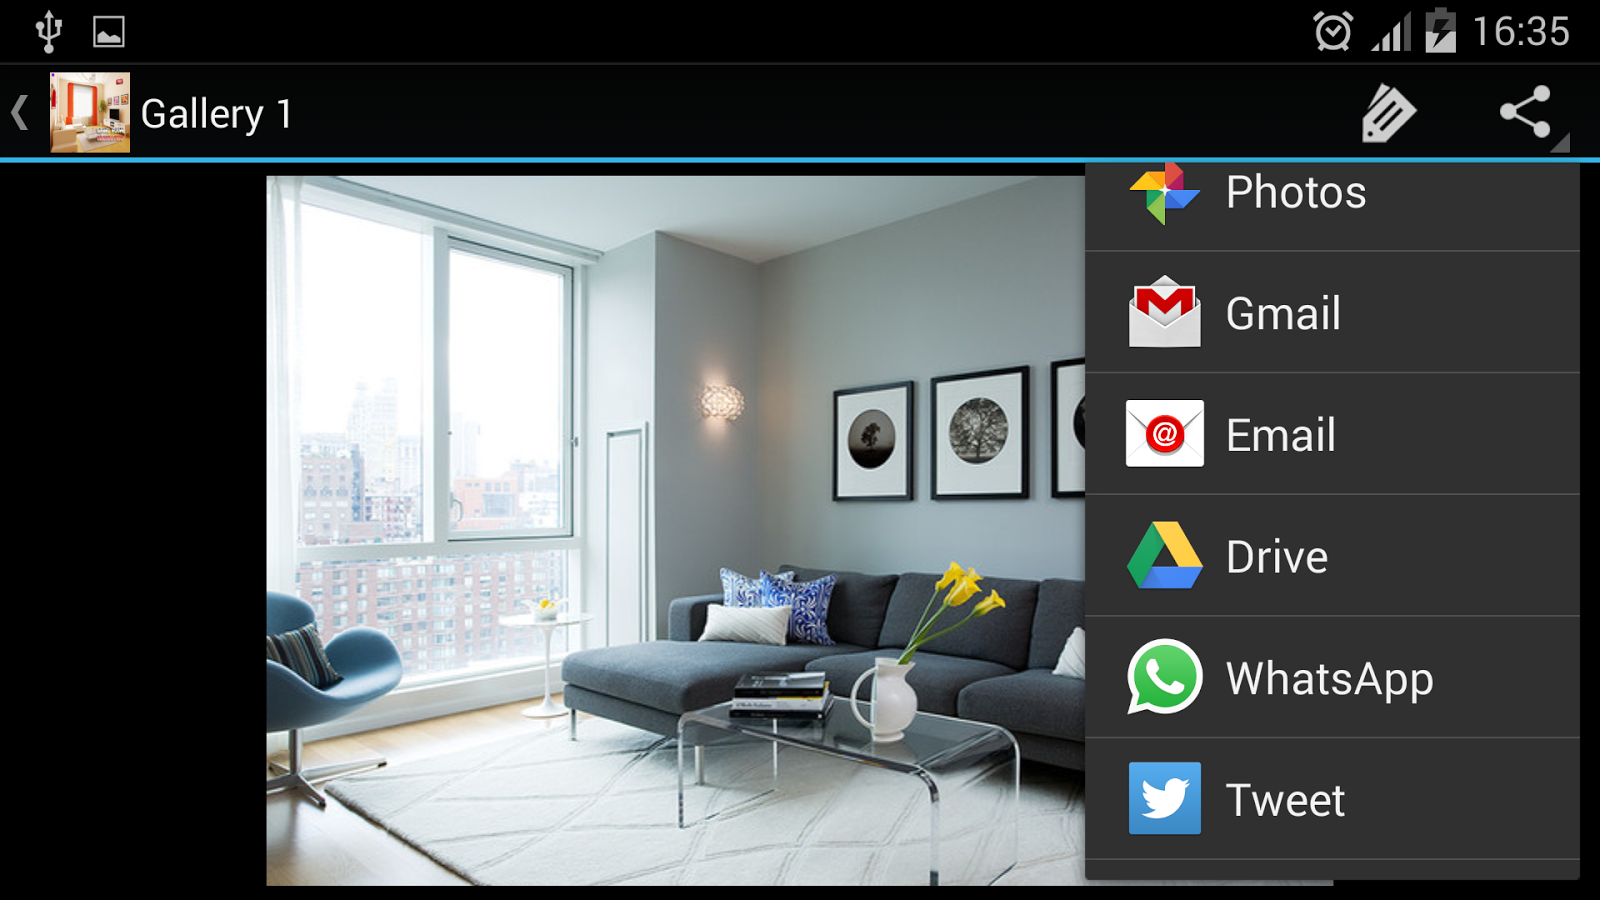 Living room ideas android apps on google play for Room design app using photos